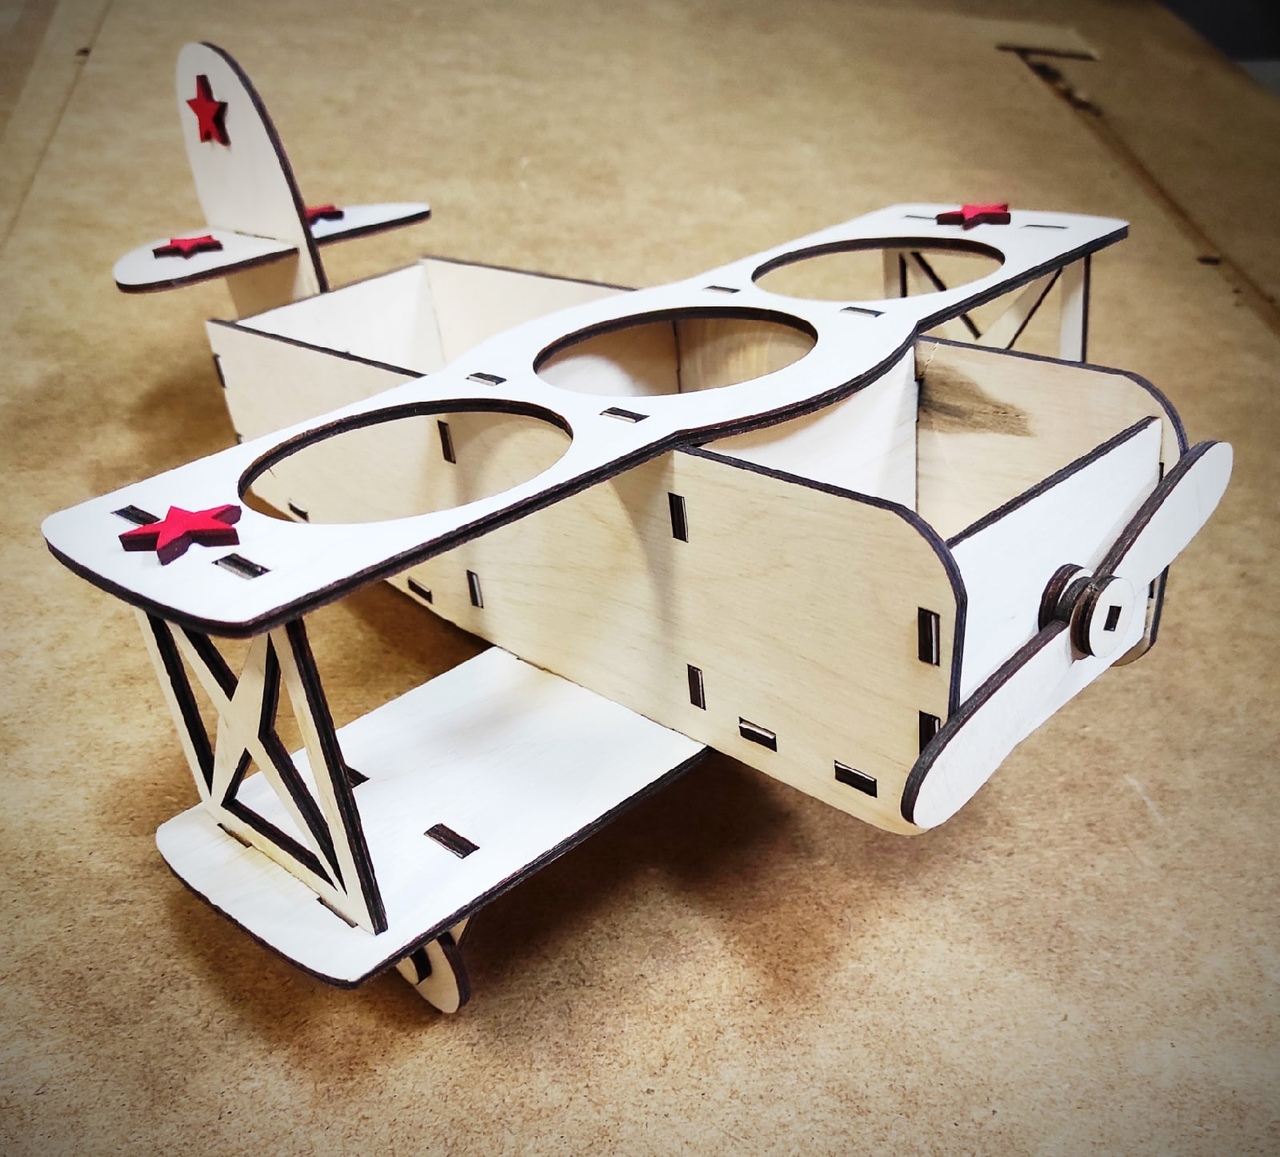 Laser Cut Airplane Model Beer Holder Free CDR Vectors Art